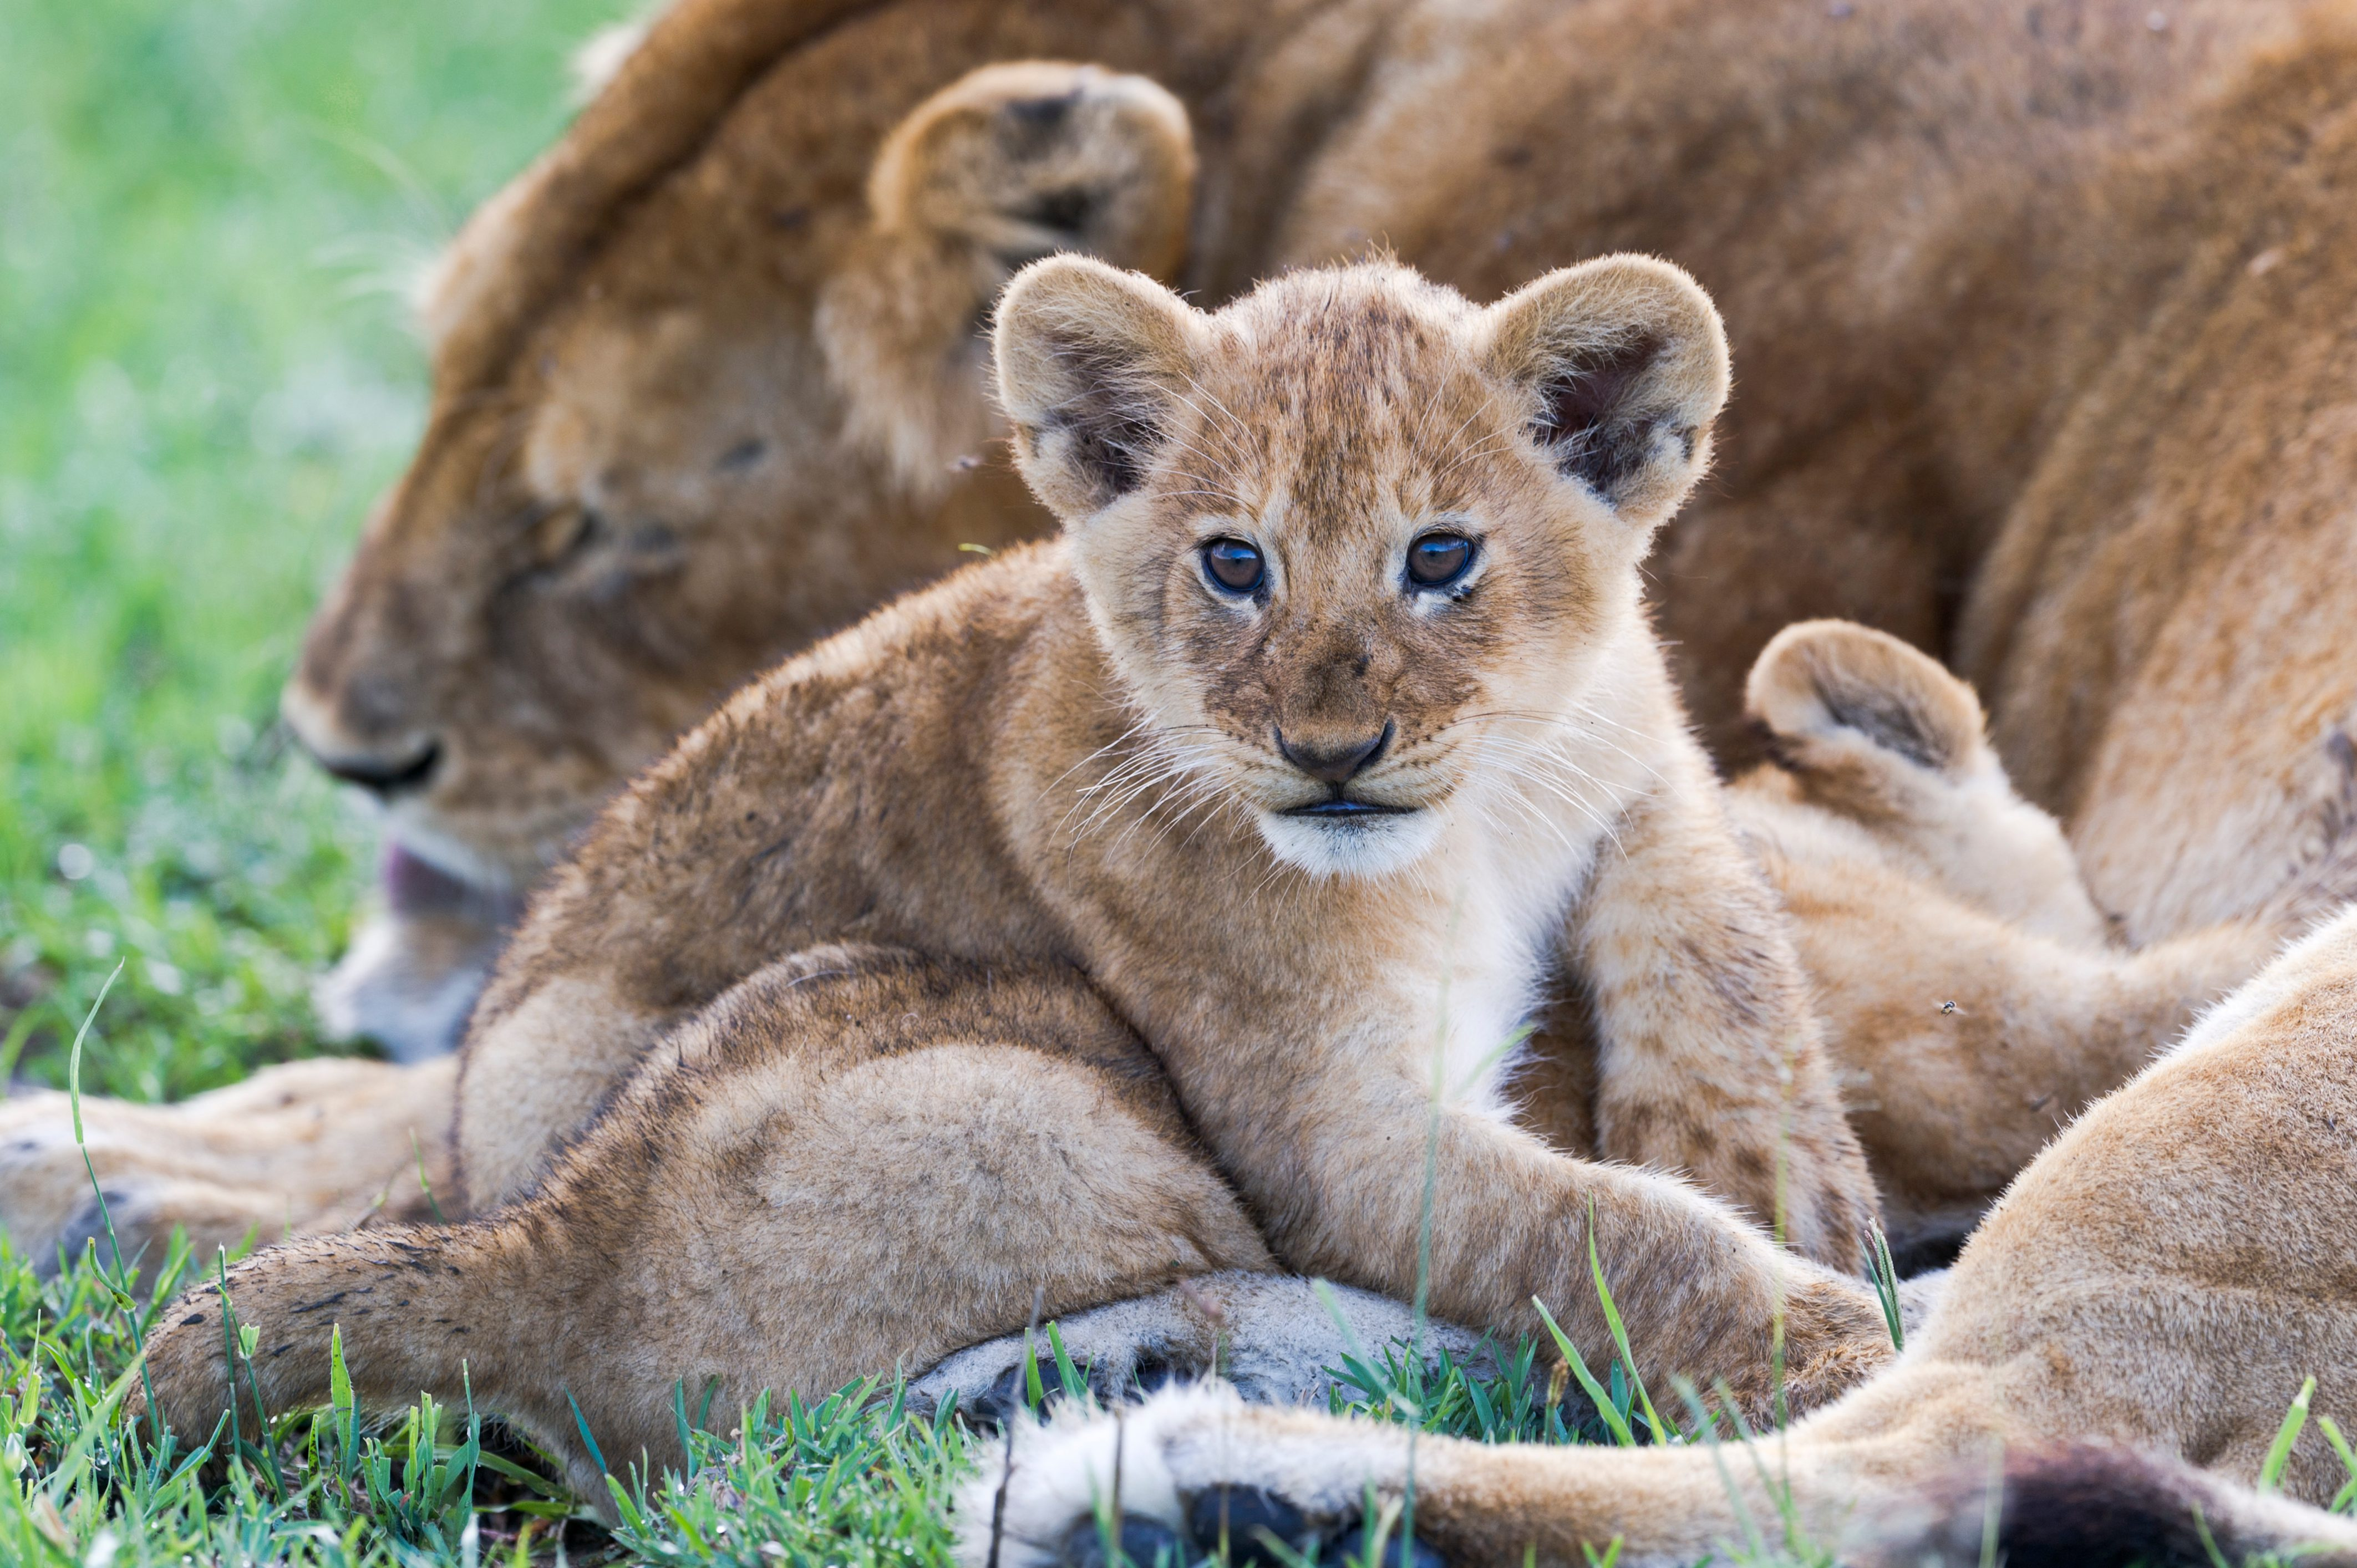 Cute News Photos Videos And Full Episode Guide Radio Times Serengeti On Bbc1 New Documentary Series To Tell Reallife Stories